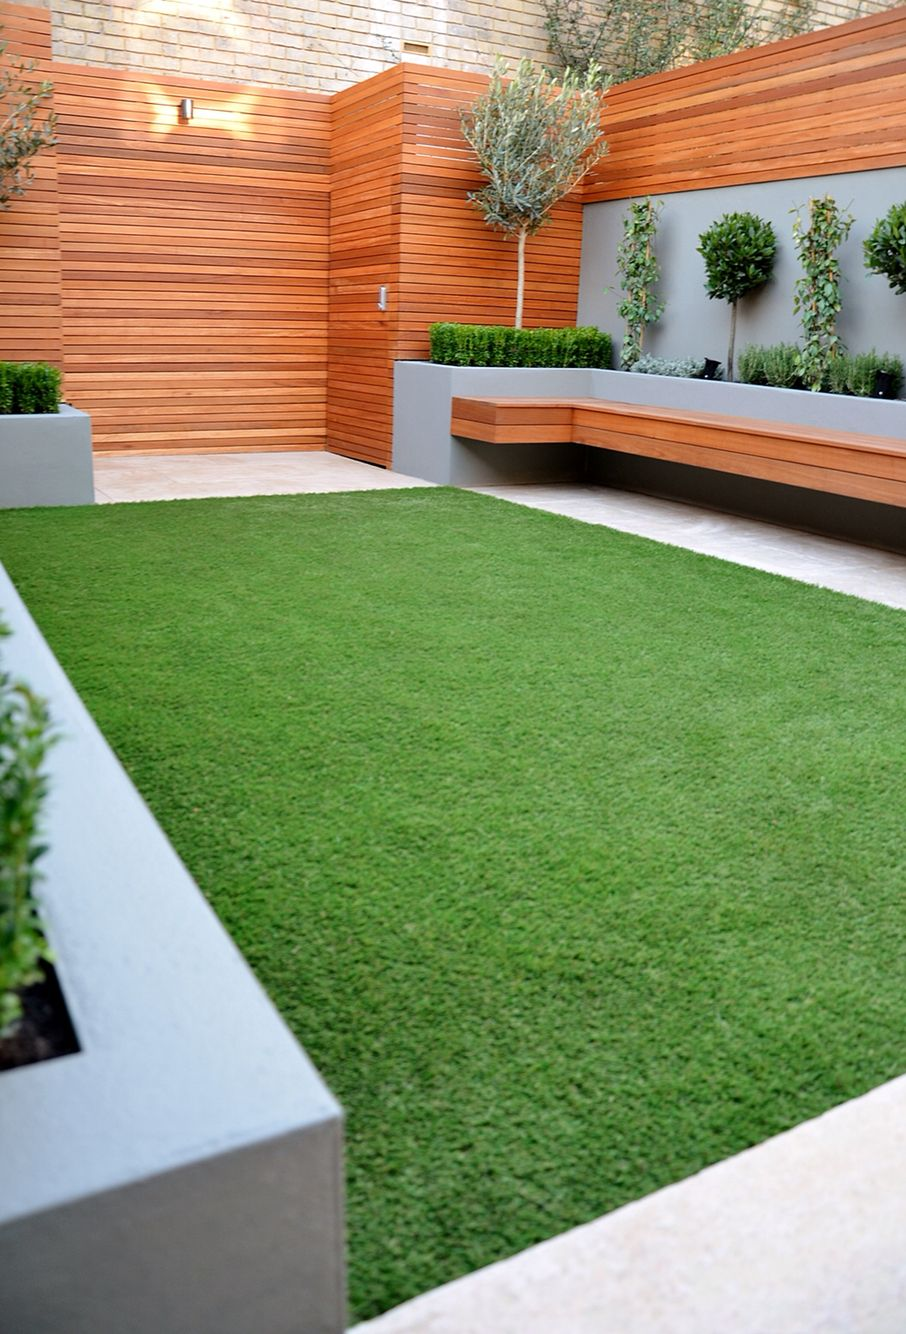 35 Modern Front Yard Landscaping Ideas With Urban Style: Urban Garden Design, Contemporary Garden, Modern Garden Design